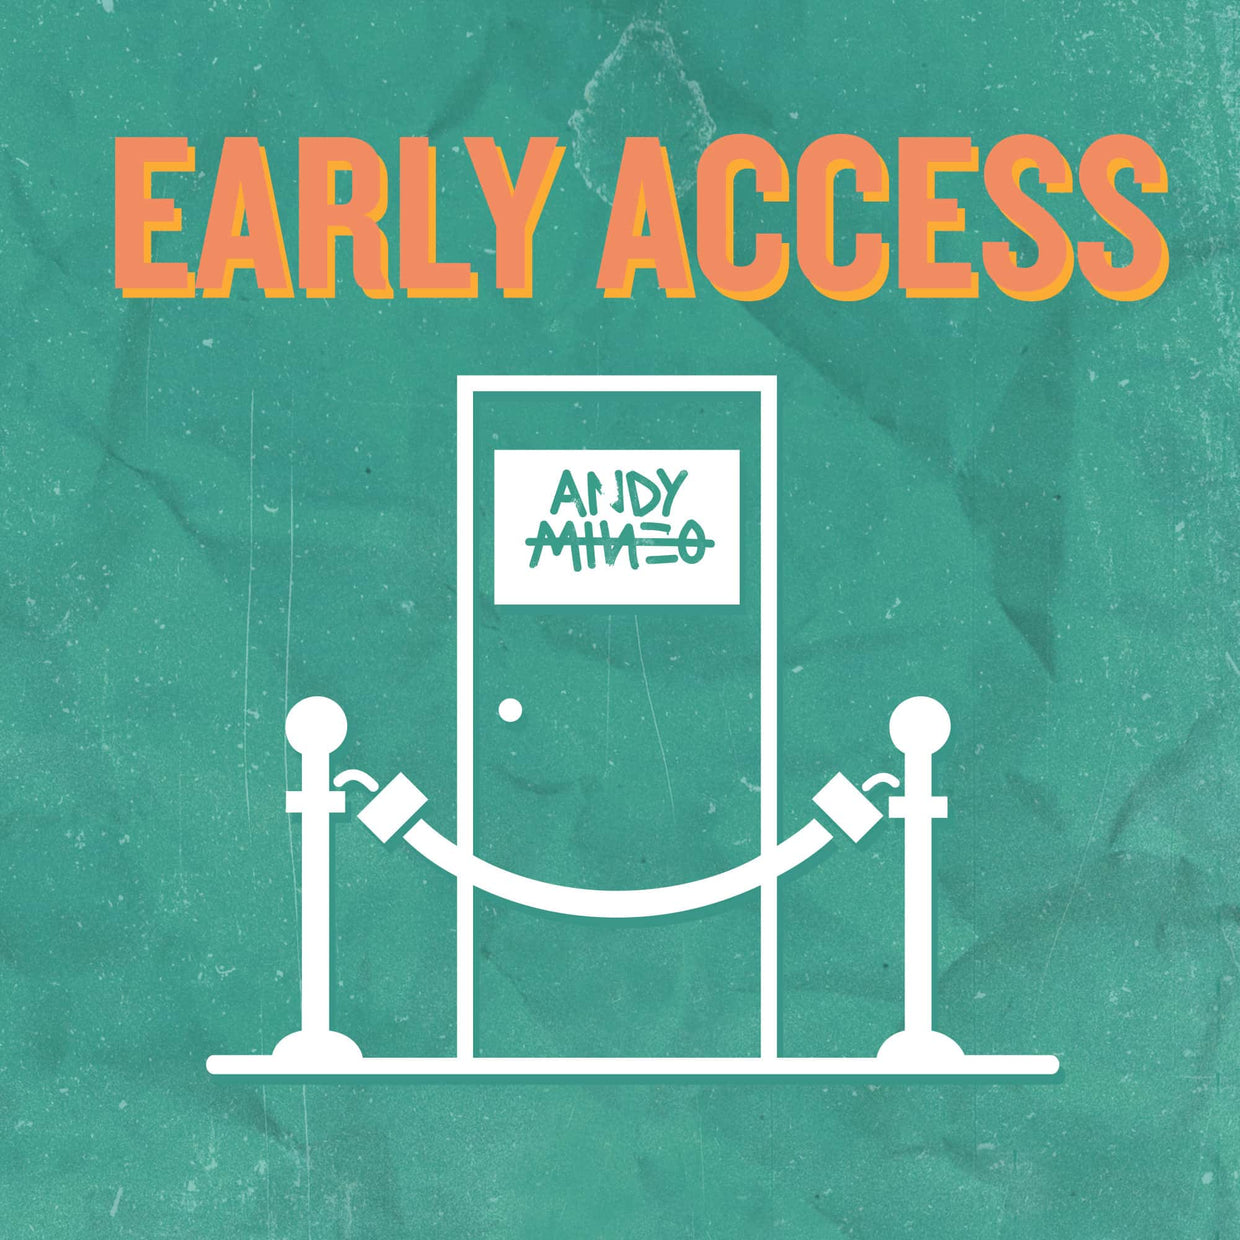 Andy Mineo LIVE in concert - VIP PASS - St Paul, MN 04/27